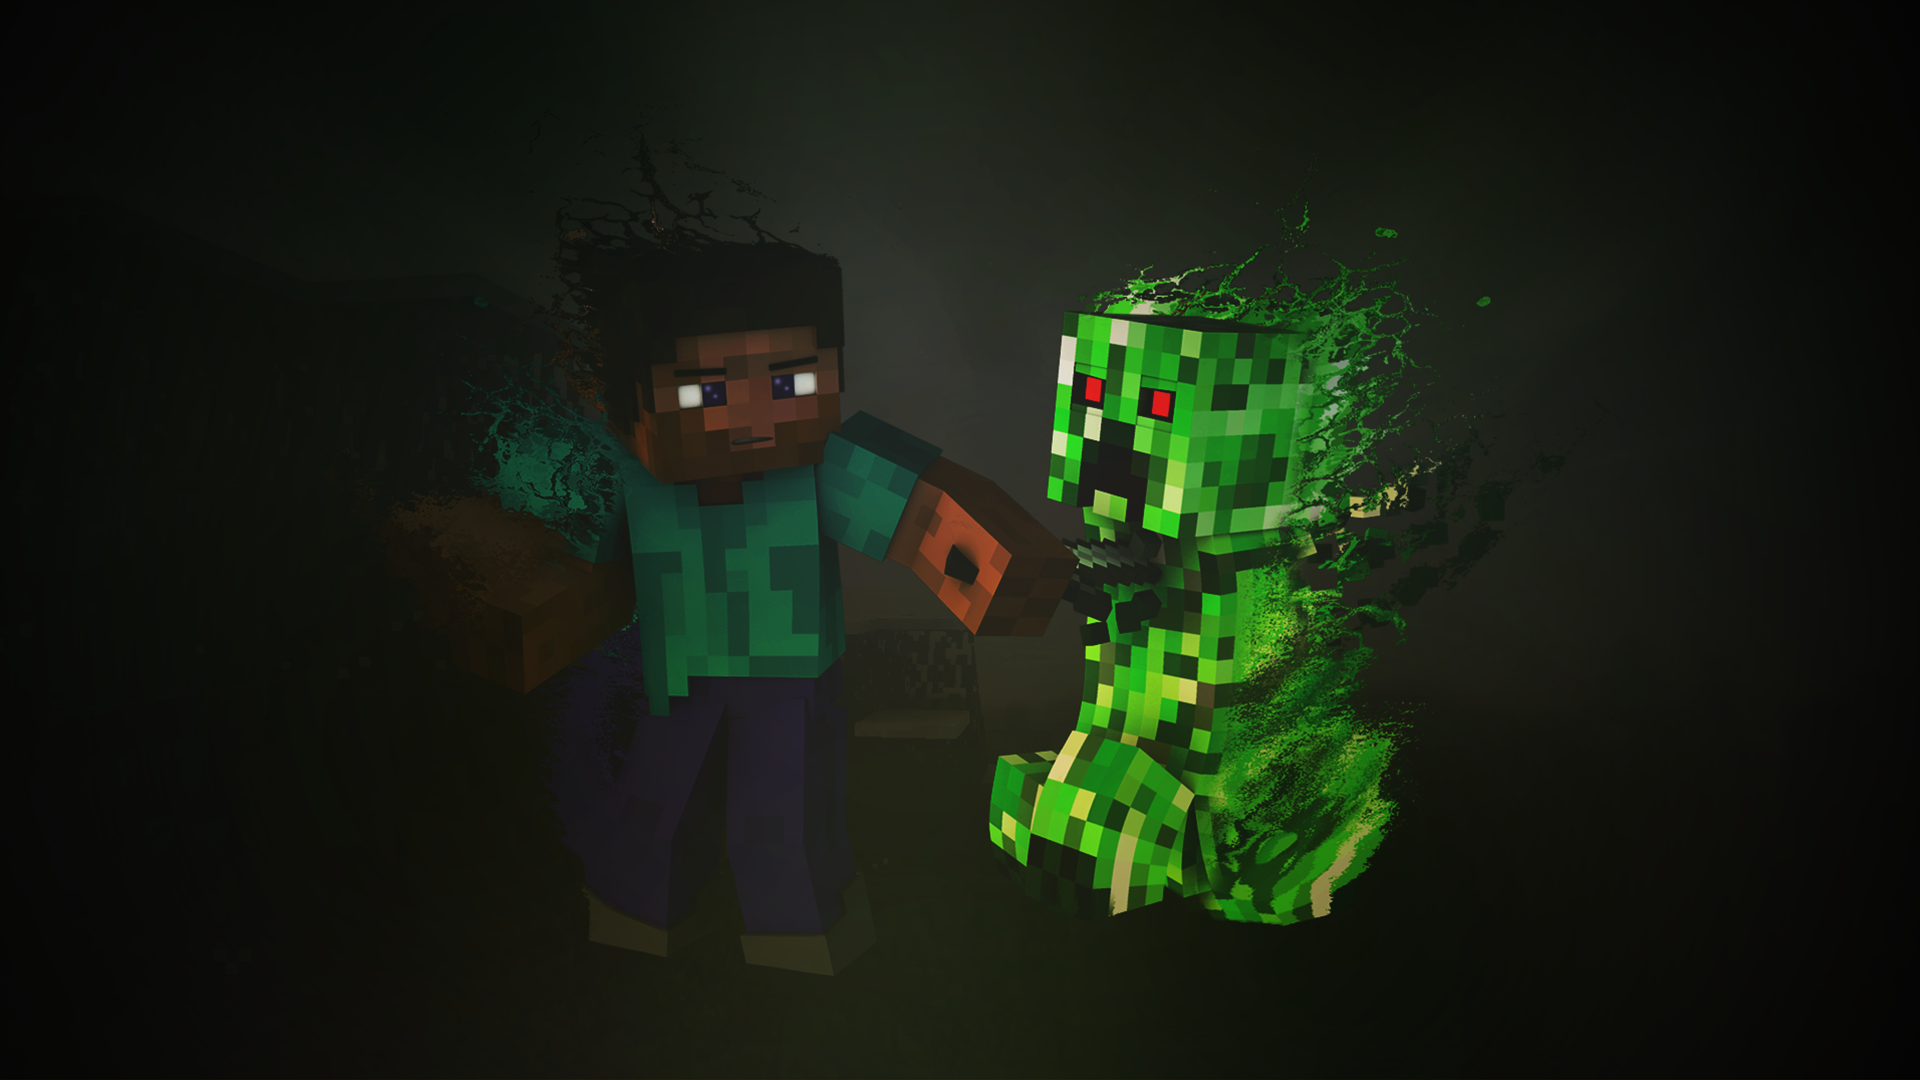 Steve Minecraft Wallpaper 19 Epic Wallpapers   Minecraft Creeper 1920x1080